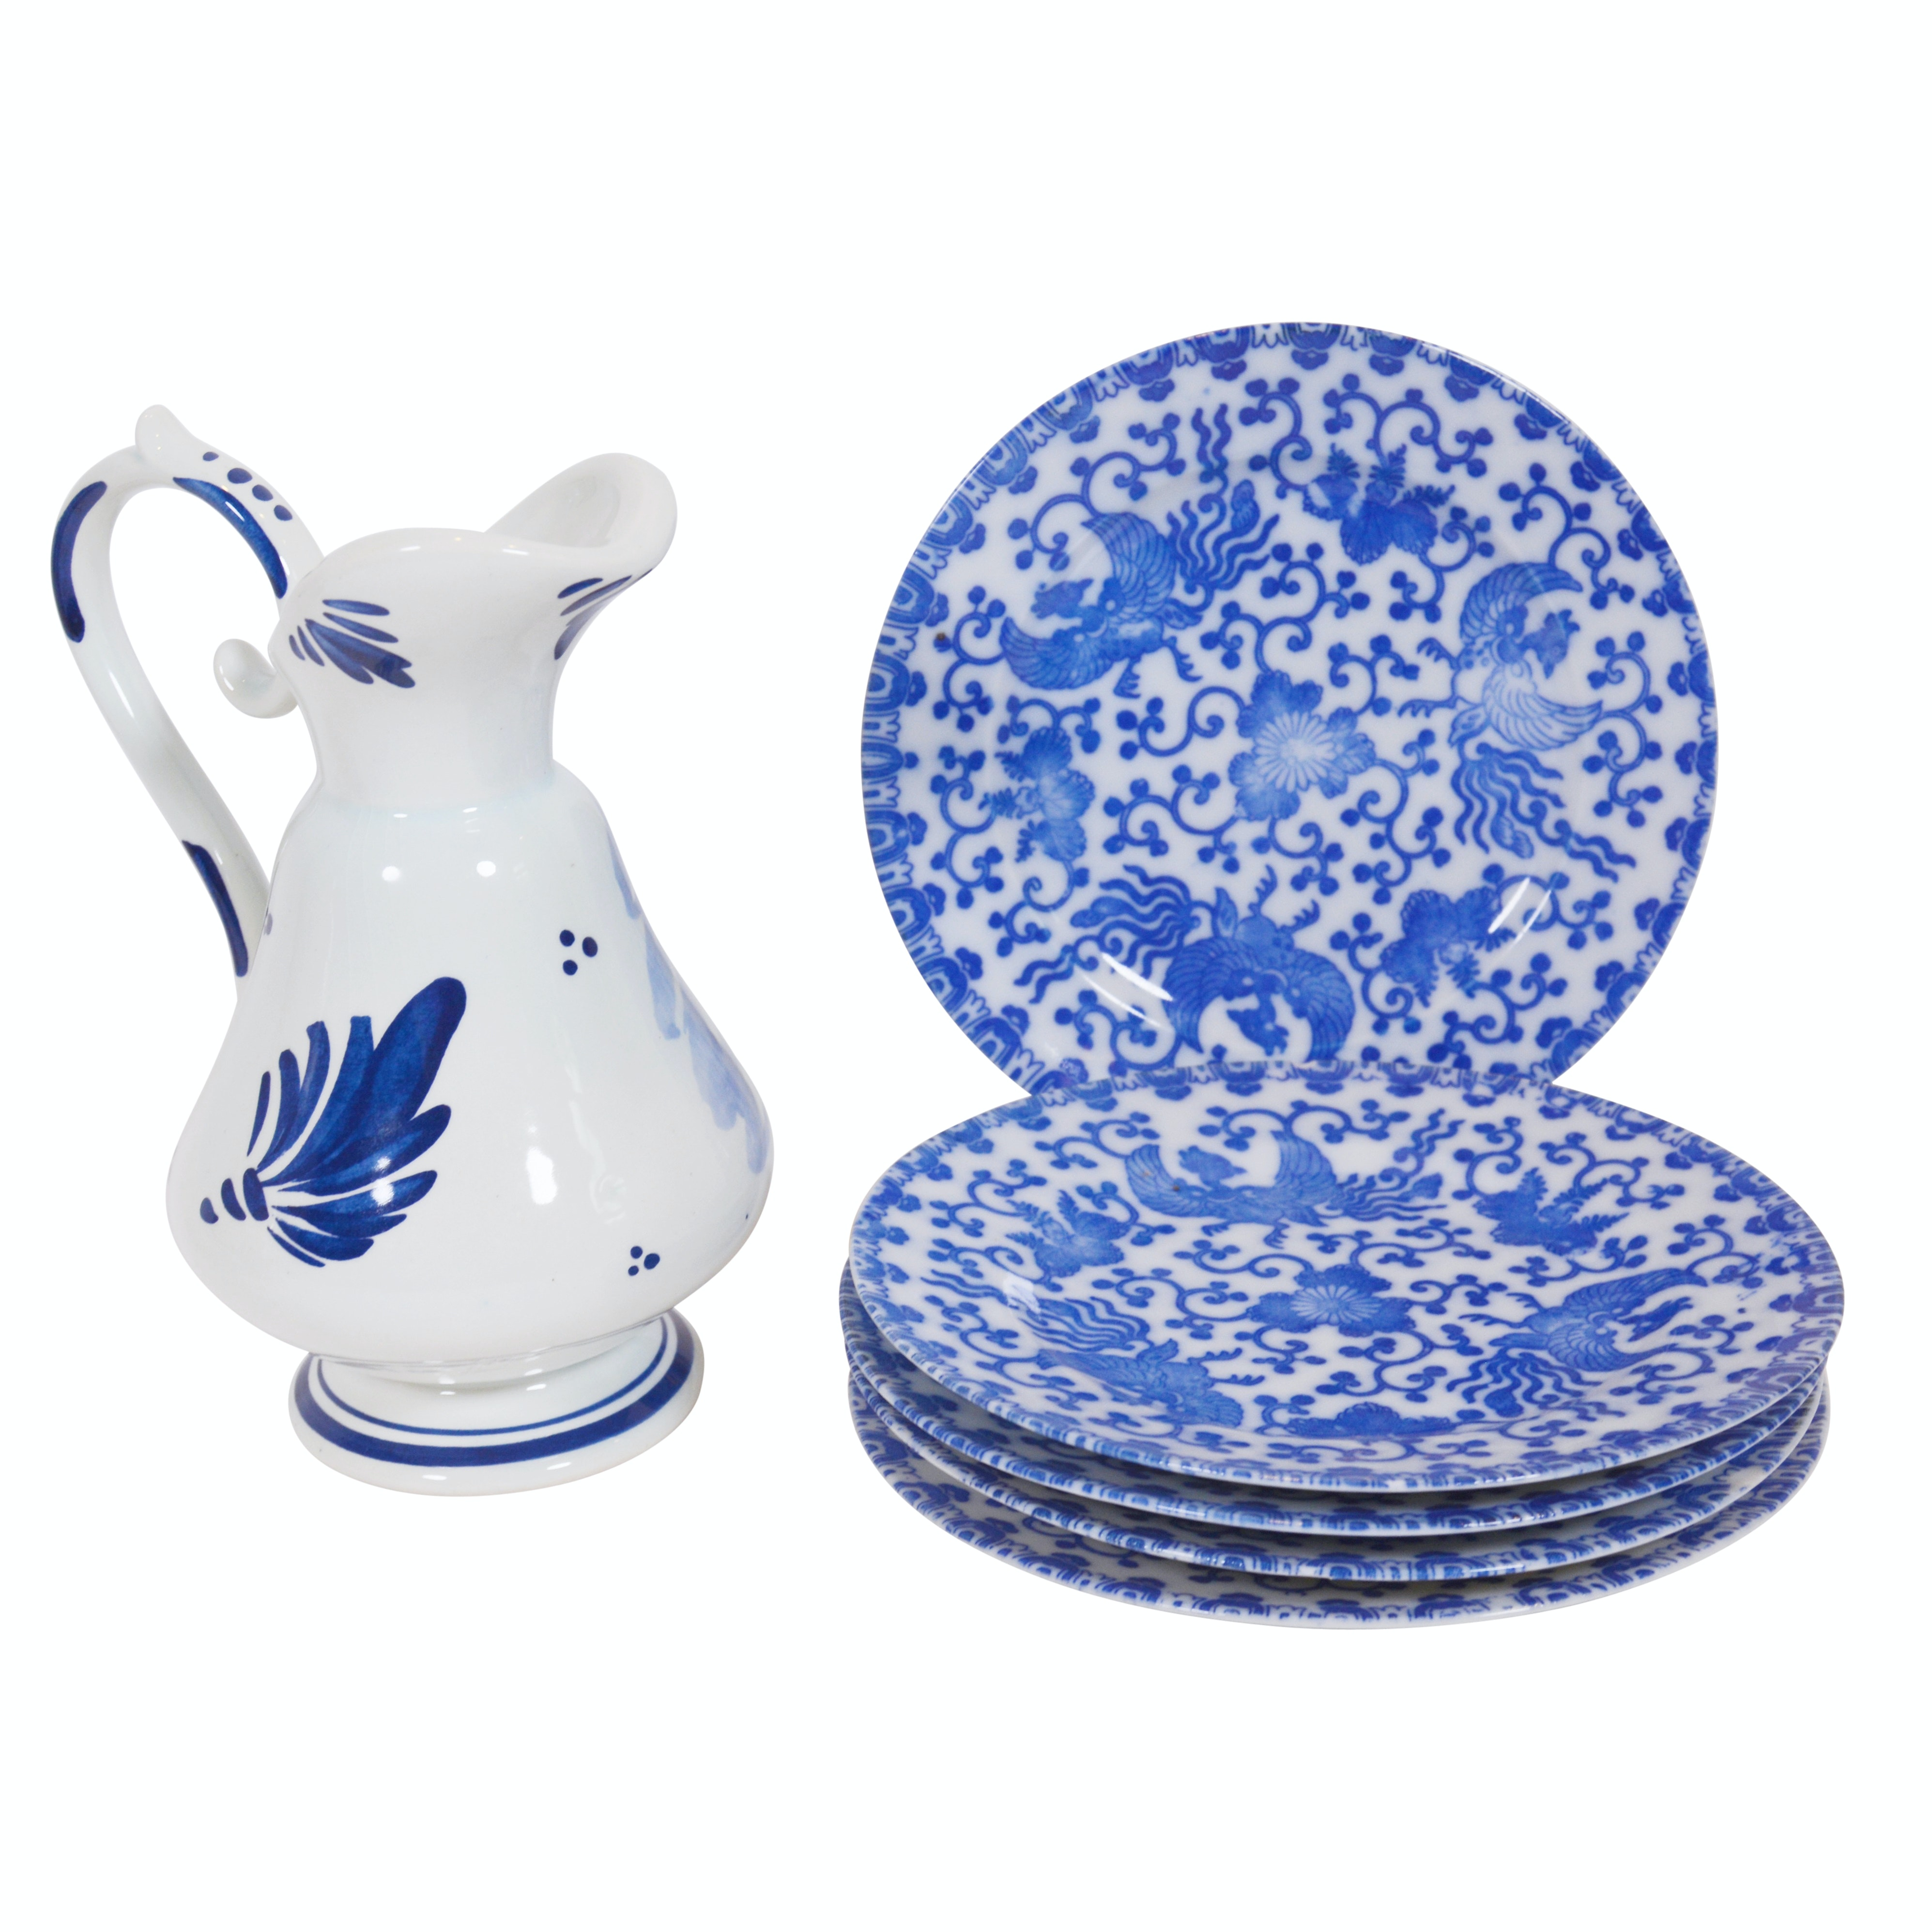 Delft Pottery Pitcher and Japanese Ceramic Plates